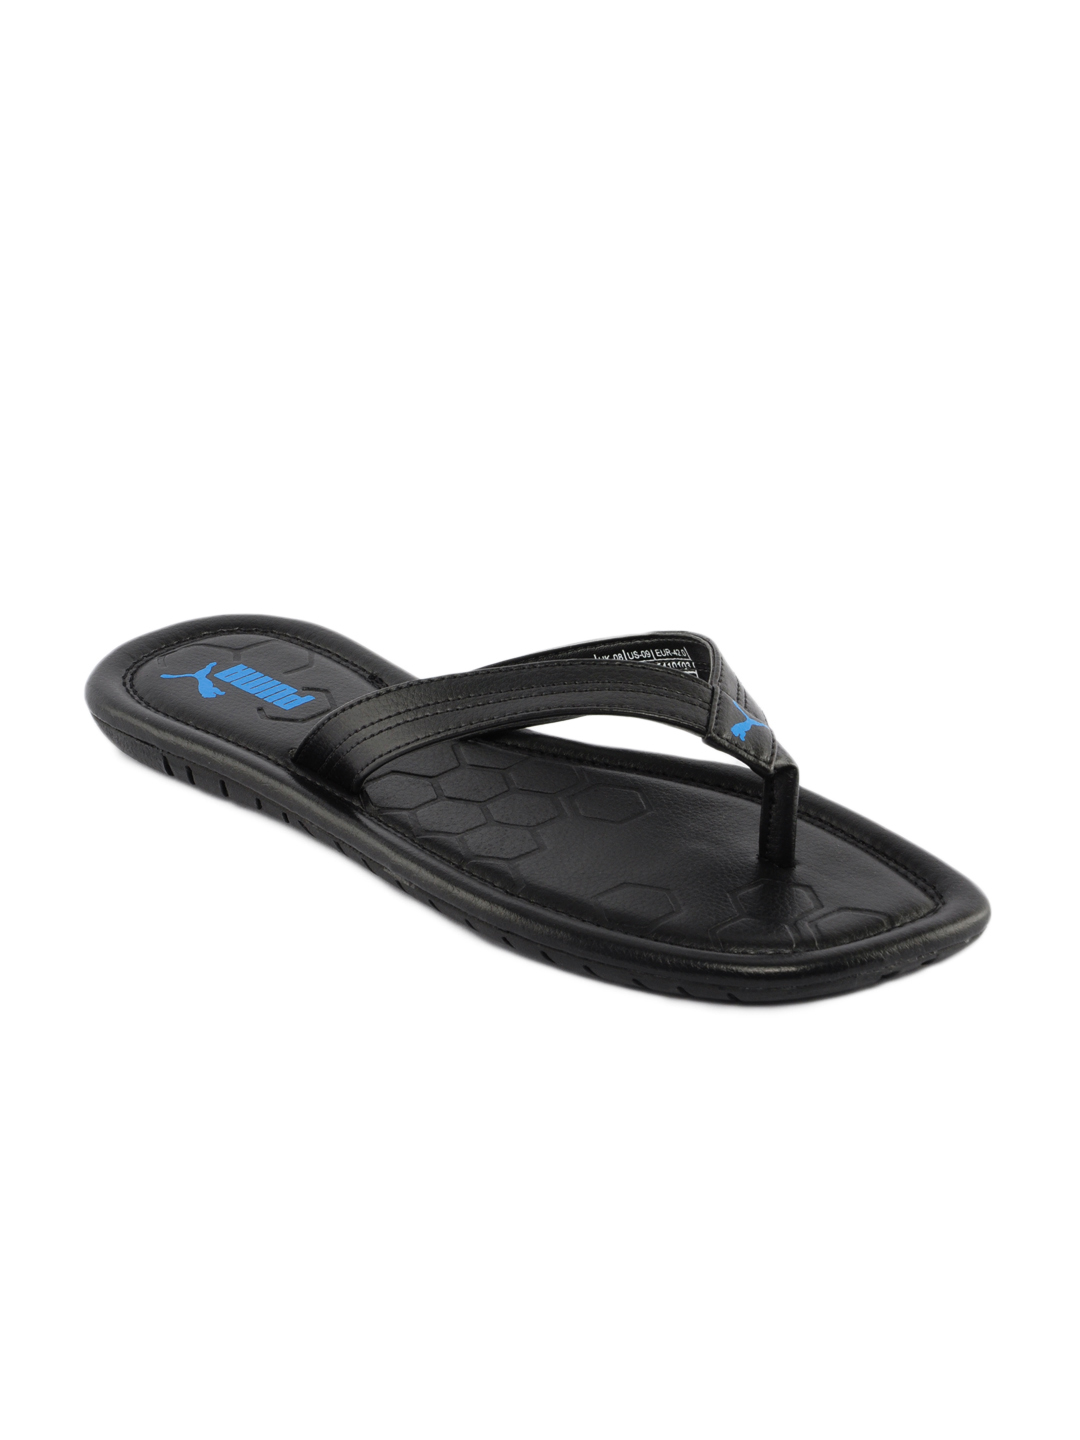 Puma Men Drifter Road Black Flip Flops